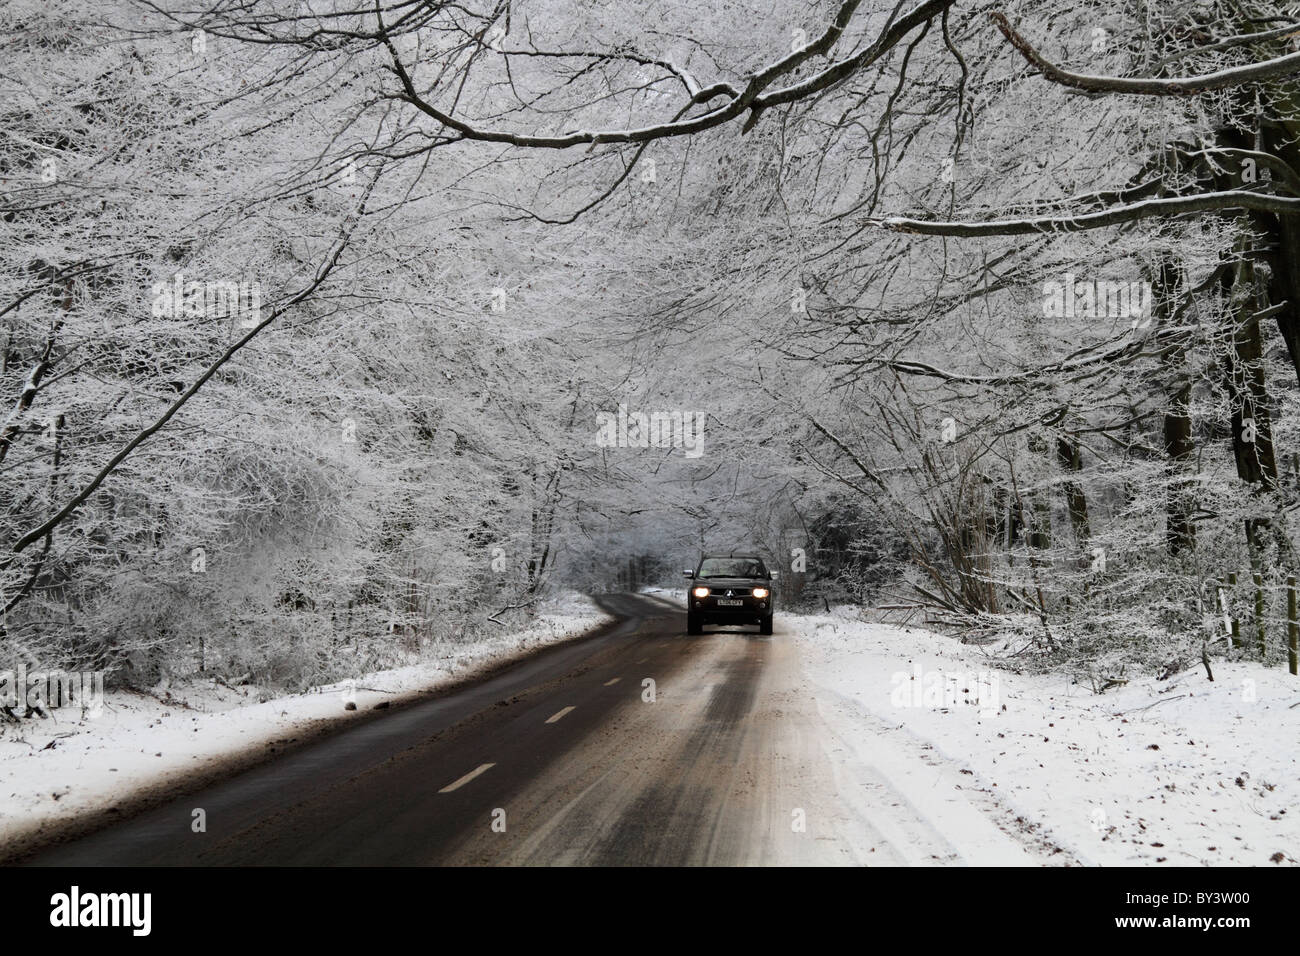 Winter driving country road hazardous conditions icy frosty - Stock Image